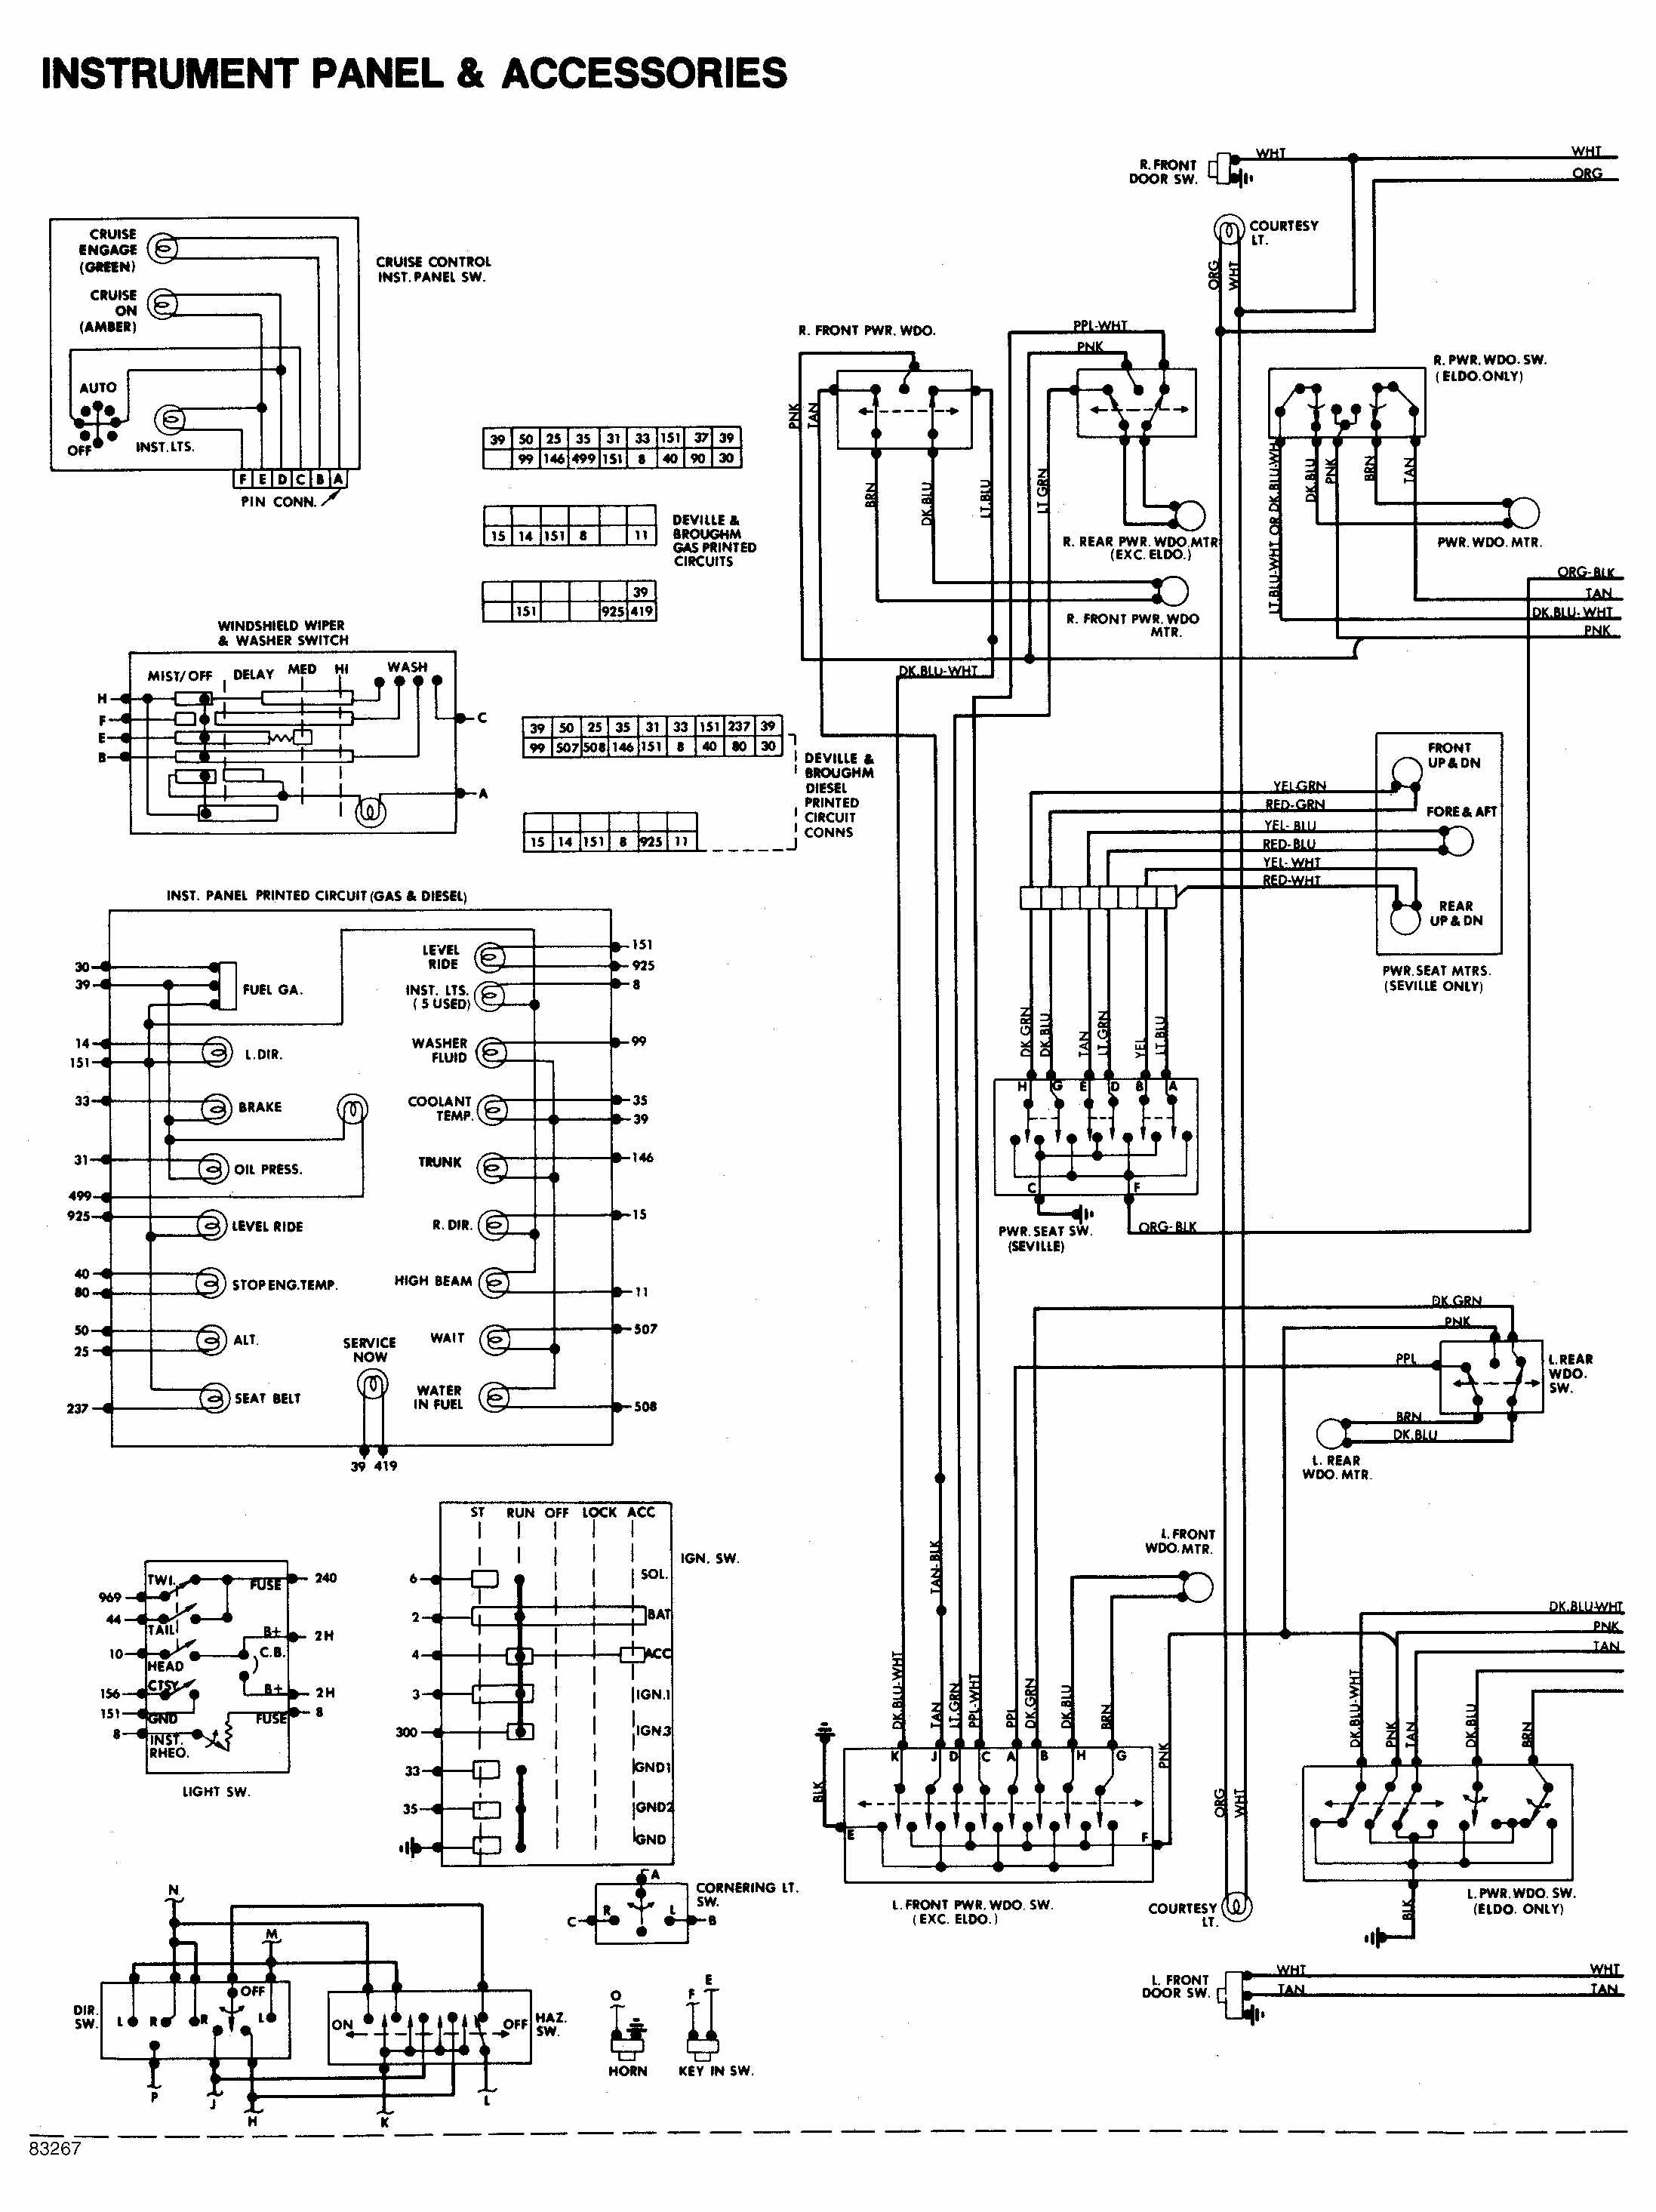 instrument panel and accessories wiring diagram of 1984 cadillac deville gm wiring diagrams 2003 chevy 3500 abs wiring diagrams \u2022 wiring Jetta Transmission Valve Body at n-0.co